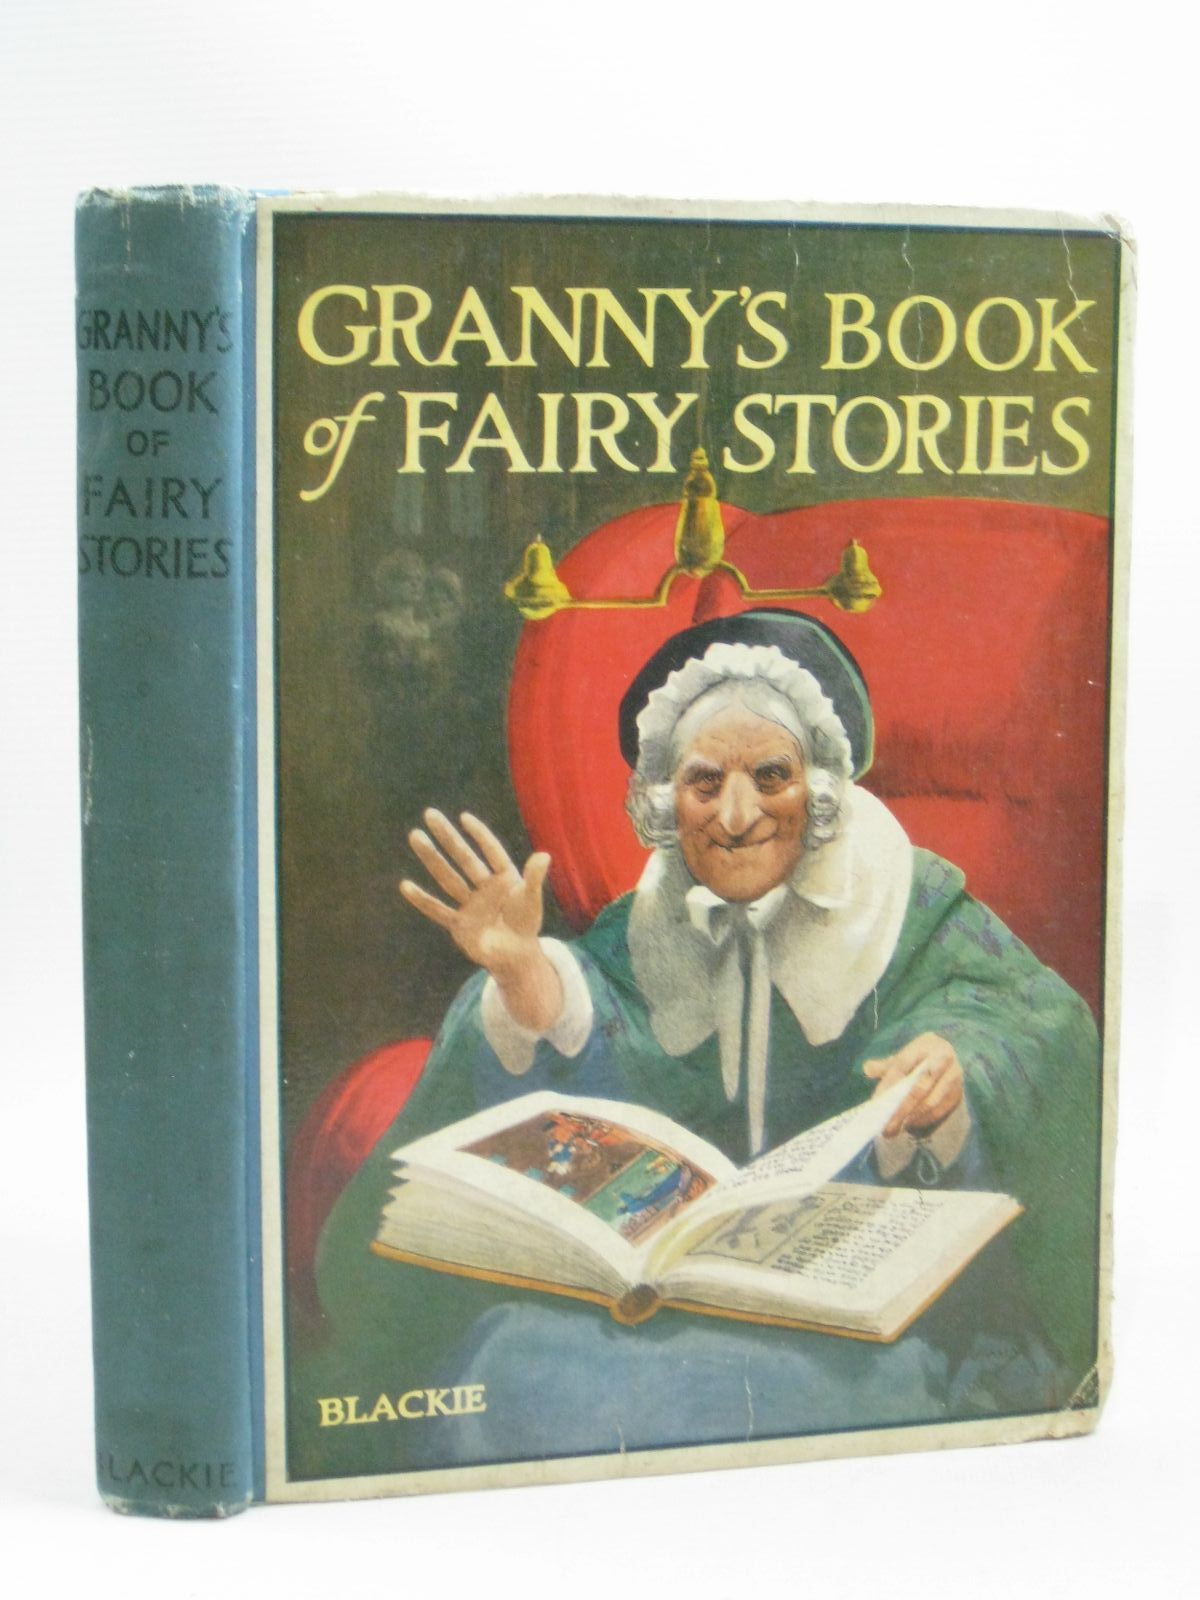 Photo of GRANNY'S BOOK OF FAIRY STORIES published by Blackie & Son Ltd. (STOCK CODE: 1314825)  for sale by Stella & Rose's Books